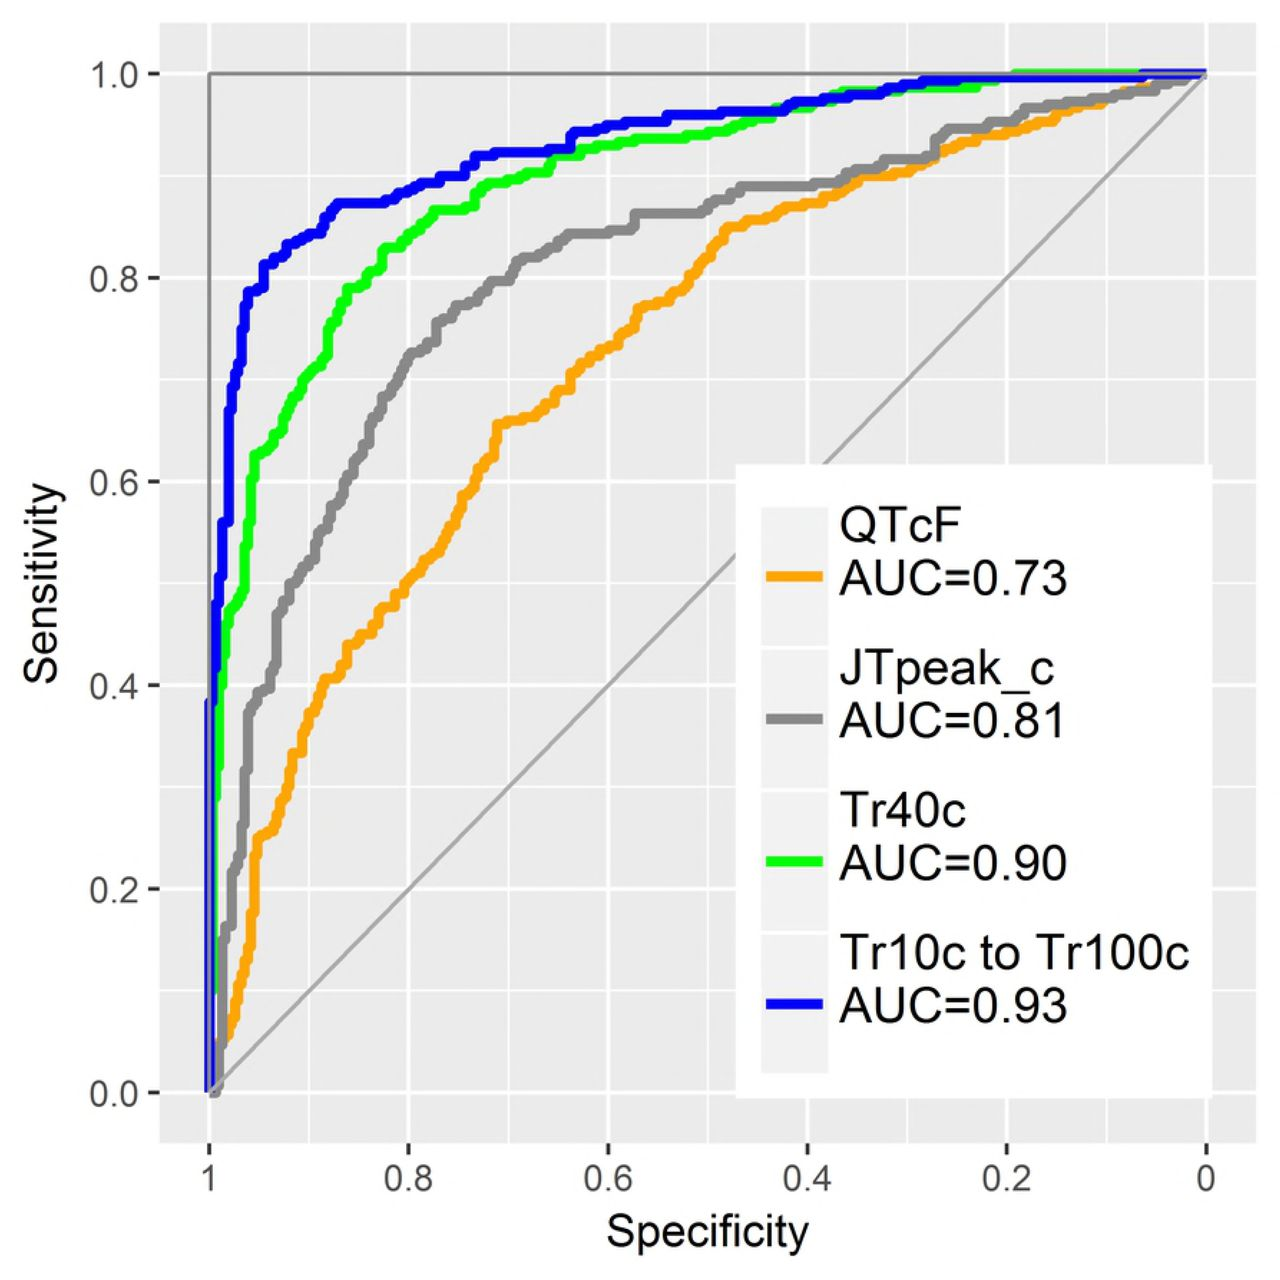 T vector velocity: A new ECG biomarker for identifying drug effects